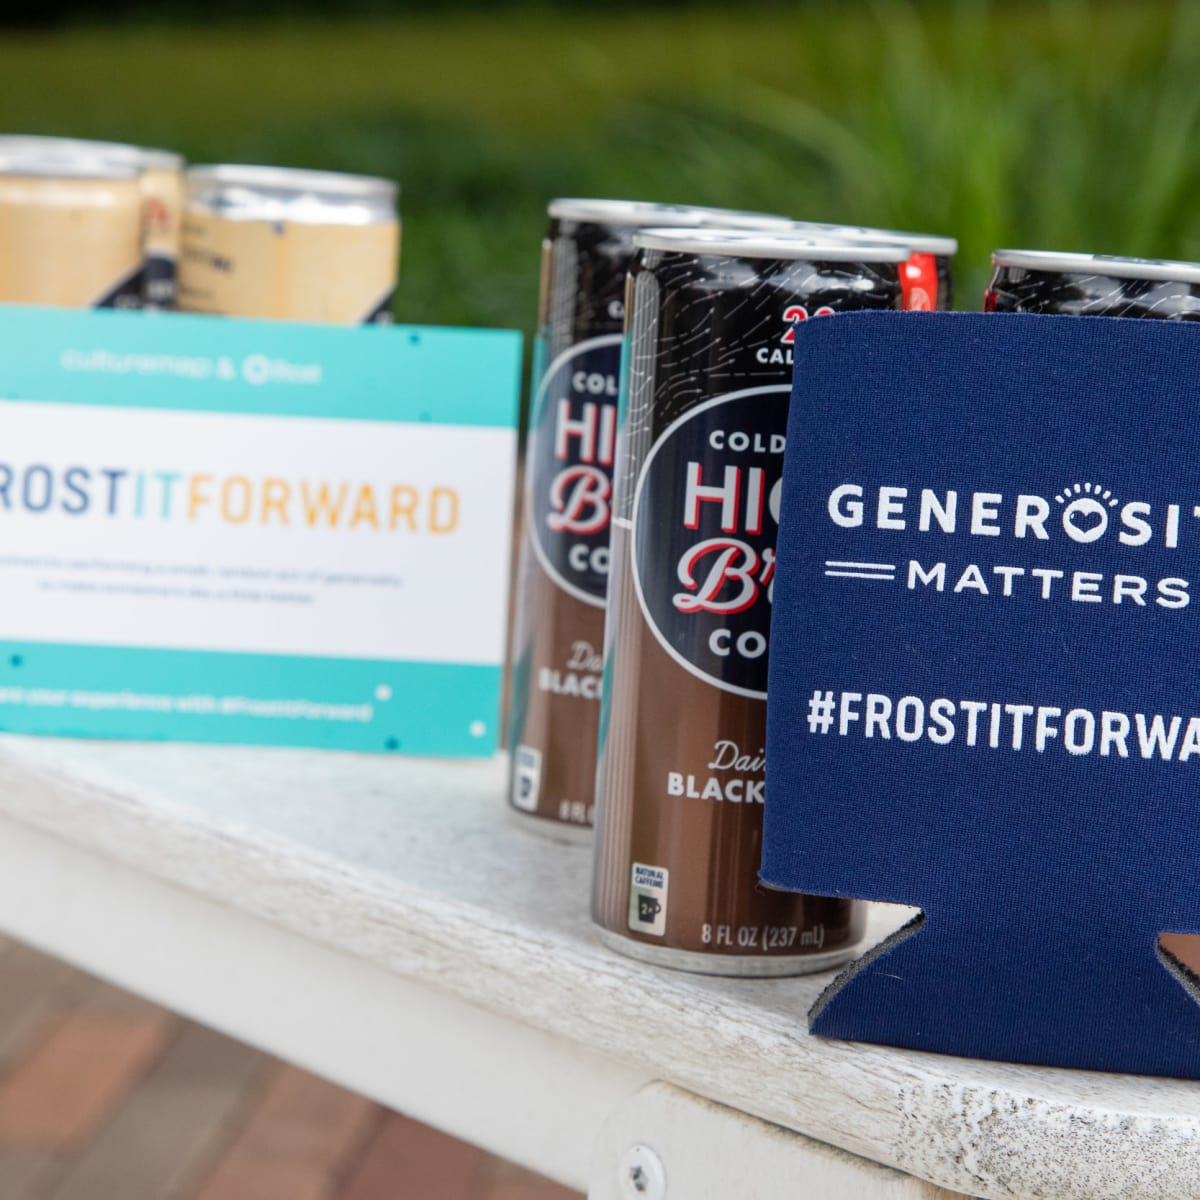 Frost pop-up at Trinity University